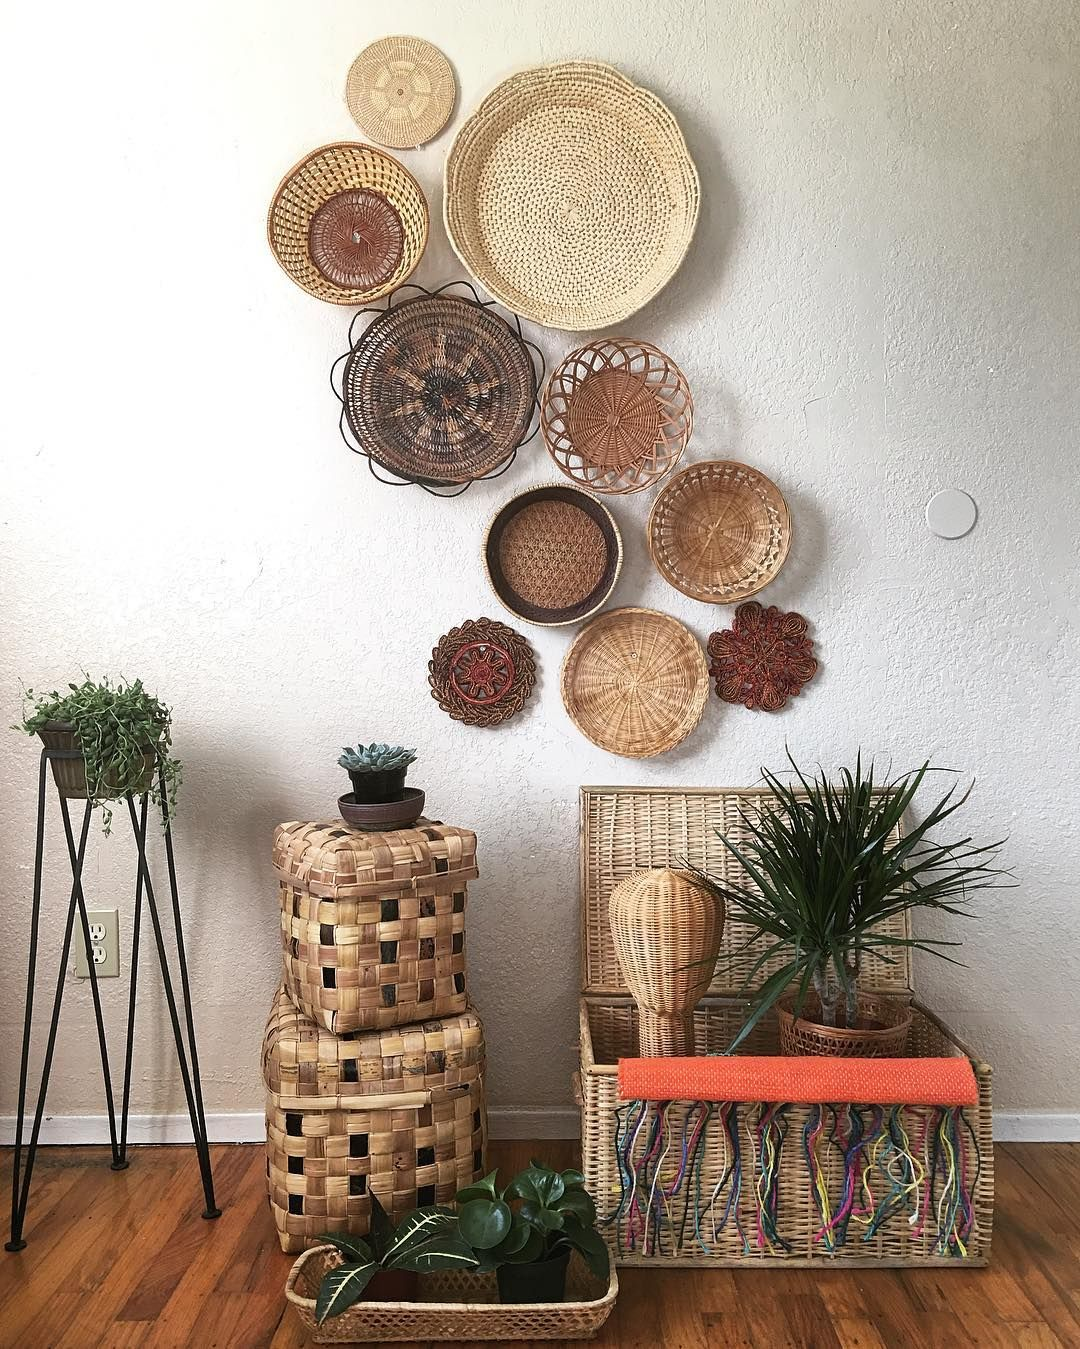 Boho Style Wall Gallery Basket Wall Decor Baskets On Wall Decor